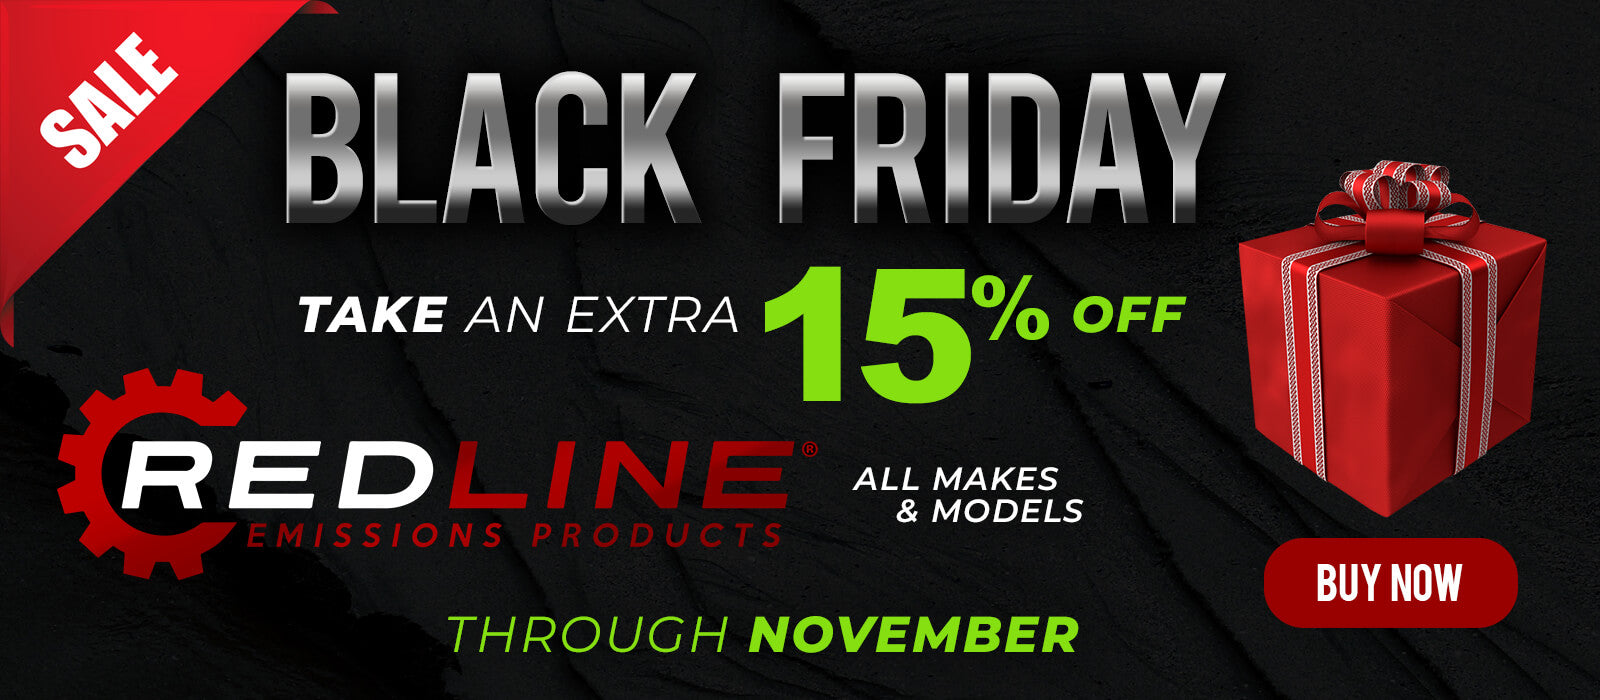 Black Friday Sale! 15% off all Redline Emissions Products for the rest of November 2020